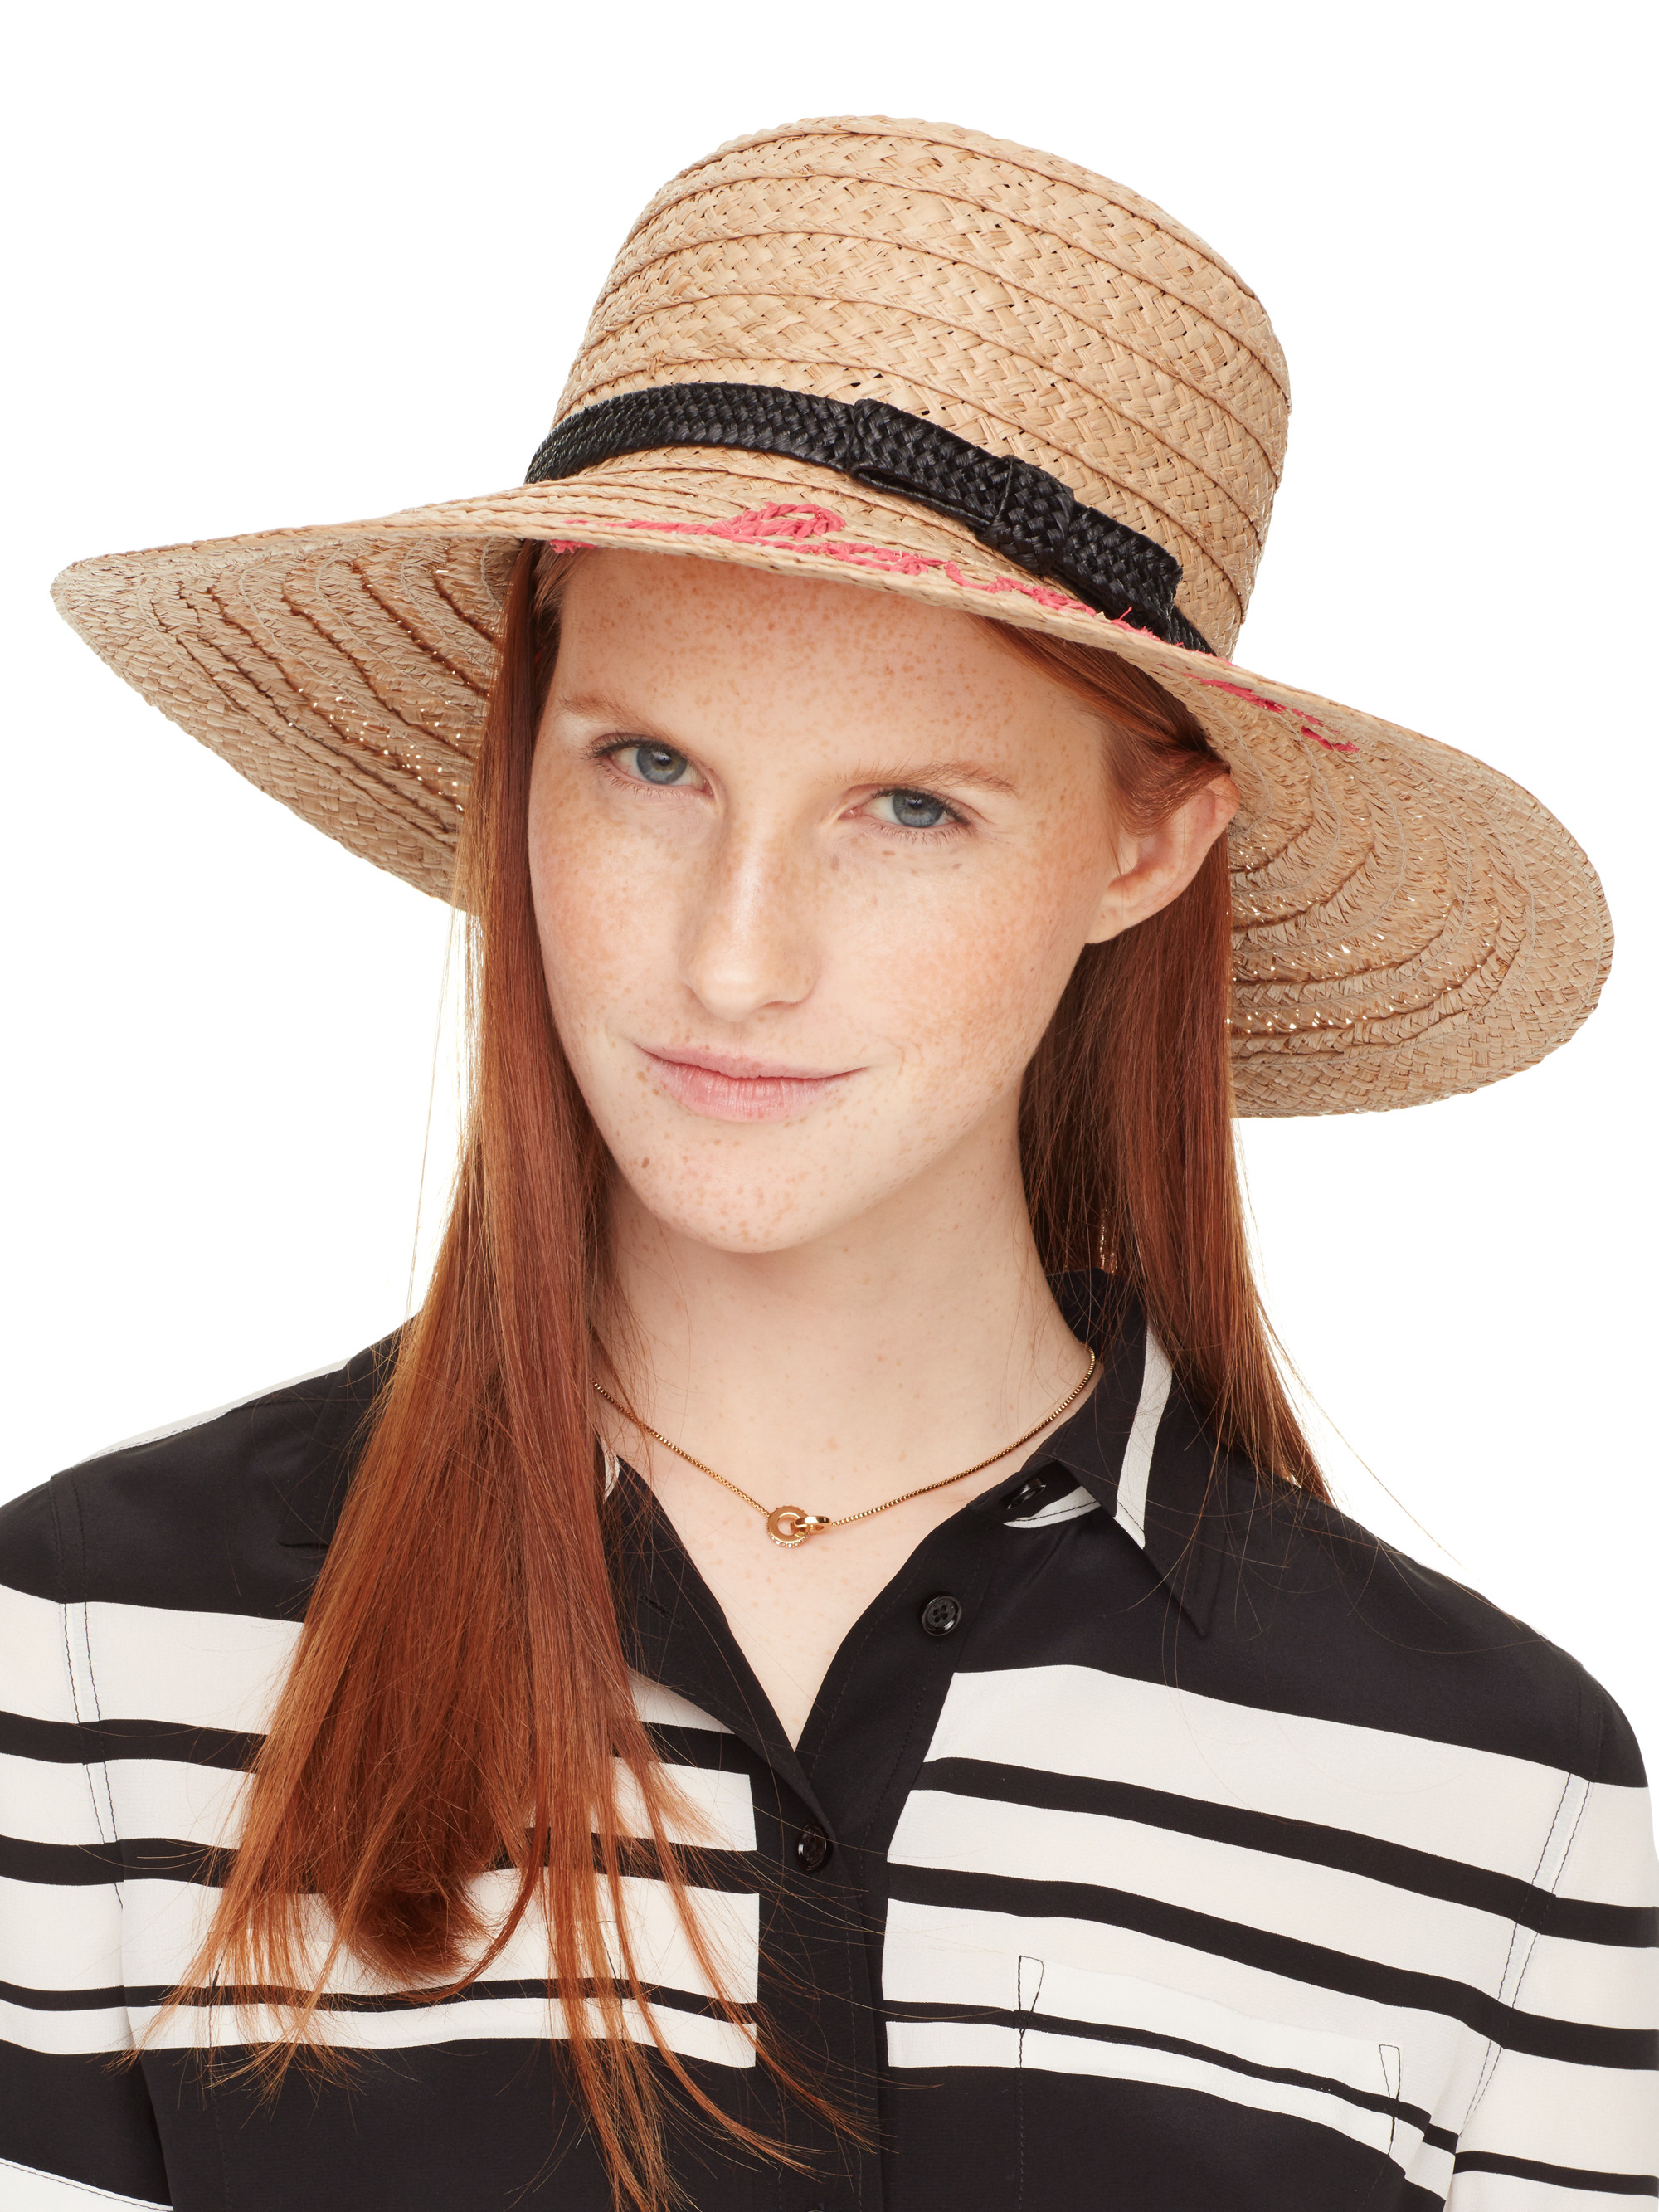 45c5bb7d49391 Kate Spade New York Embroidered Lovely Sunhat in Natural - Lyst